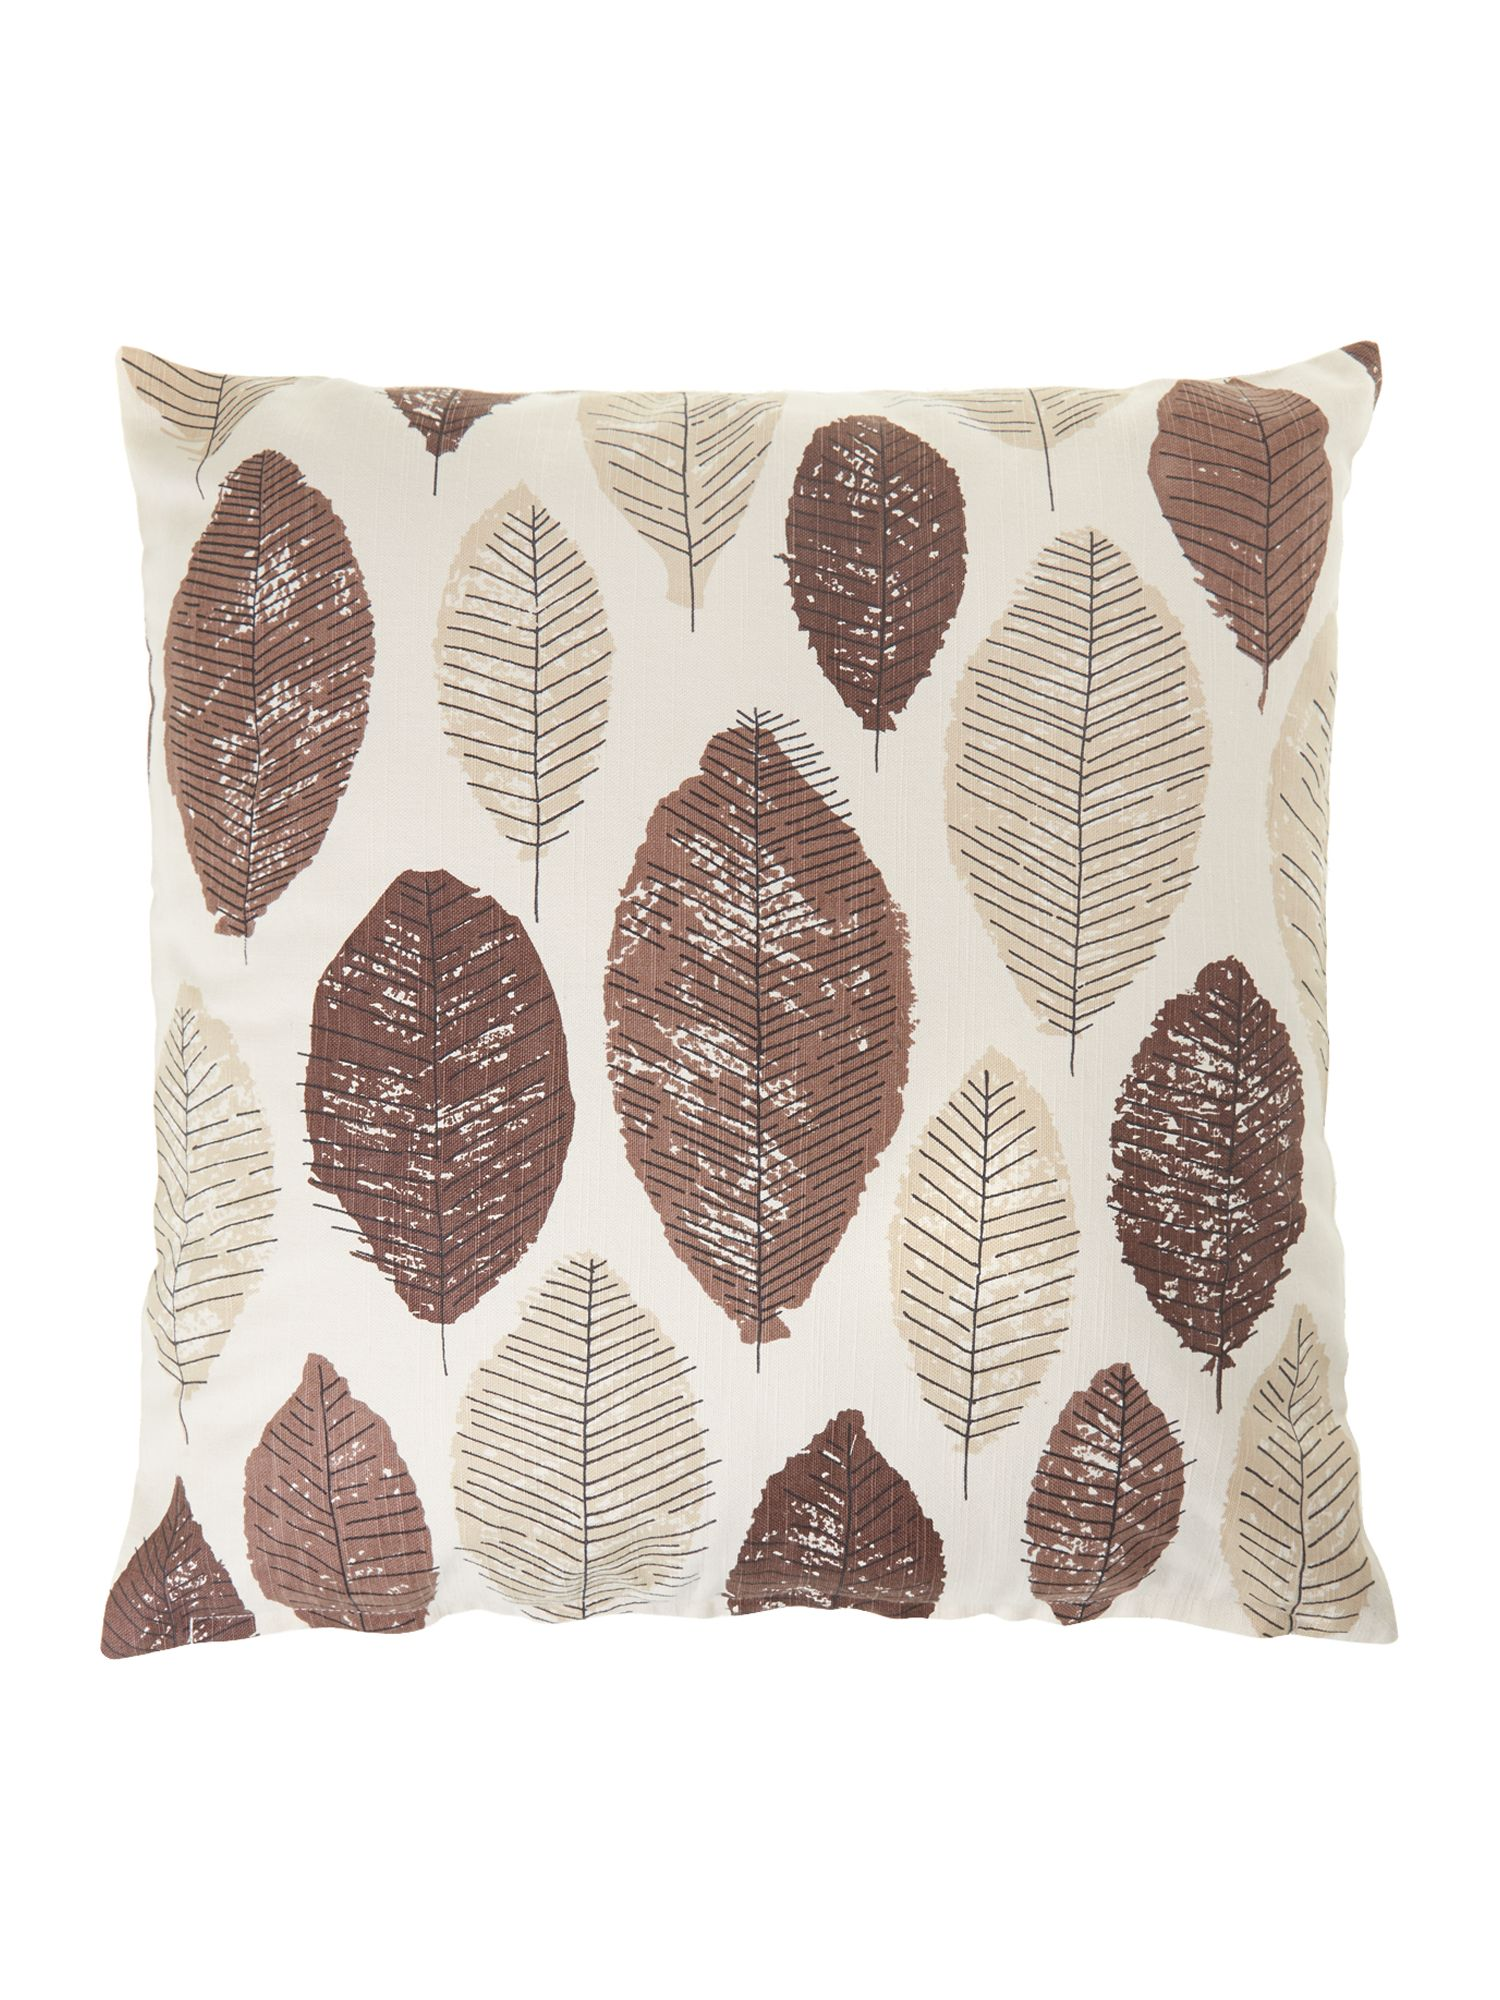 Leaf design cotton cushion, chocolate